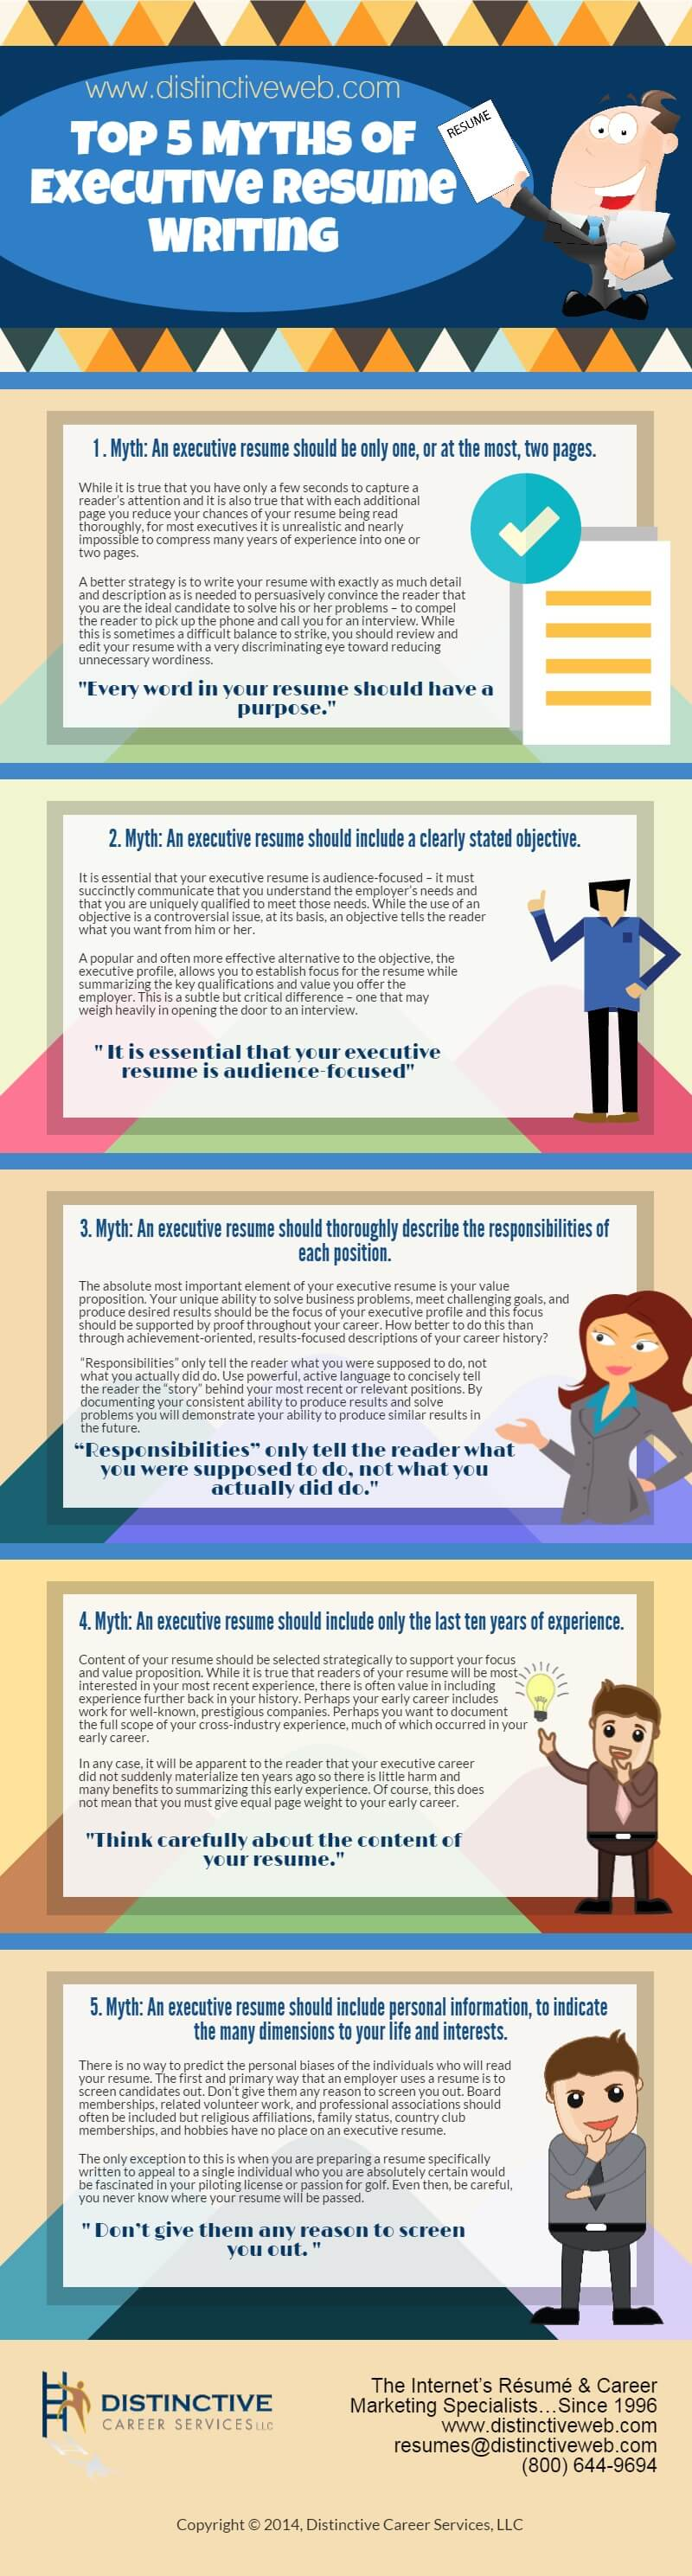 Infographic: Top 5 Myths of Executive Resume Writing